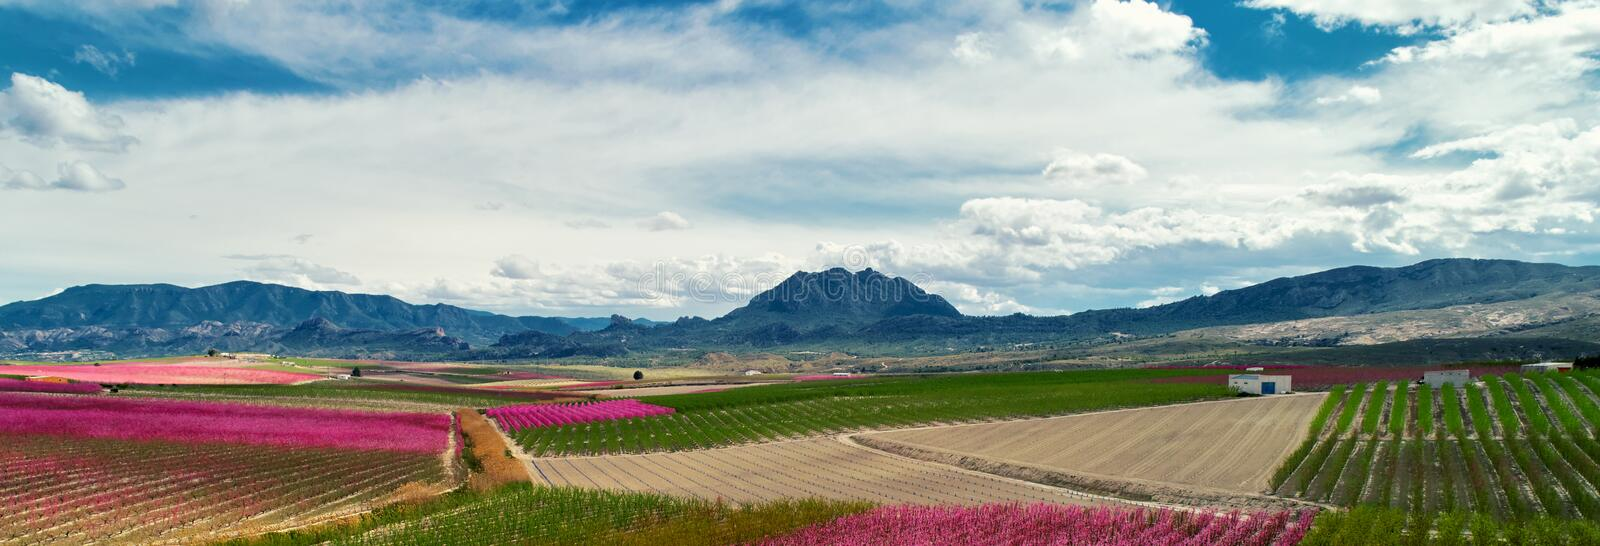 Cropped image horizontal view orchards in bloom. Spain royalty free stock photos